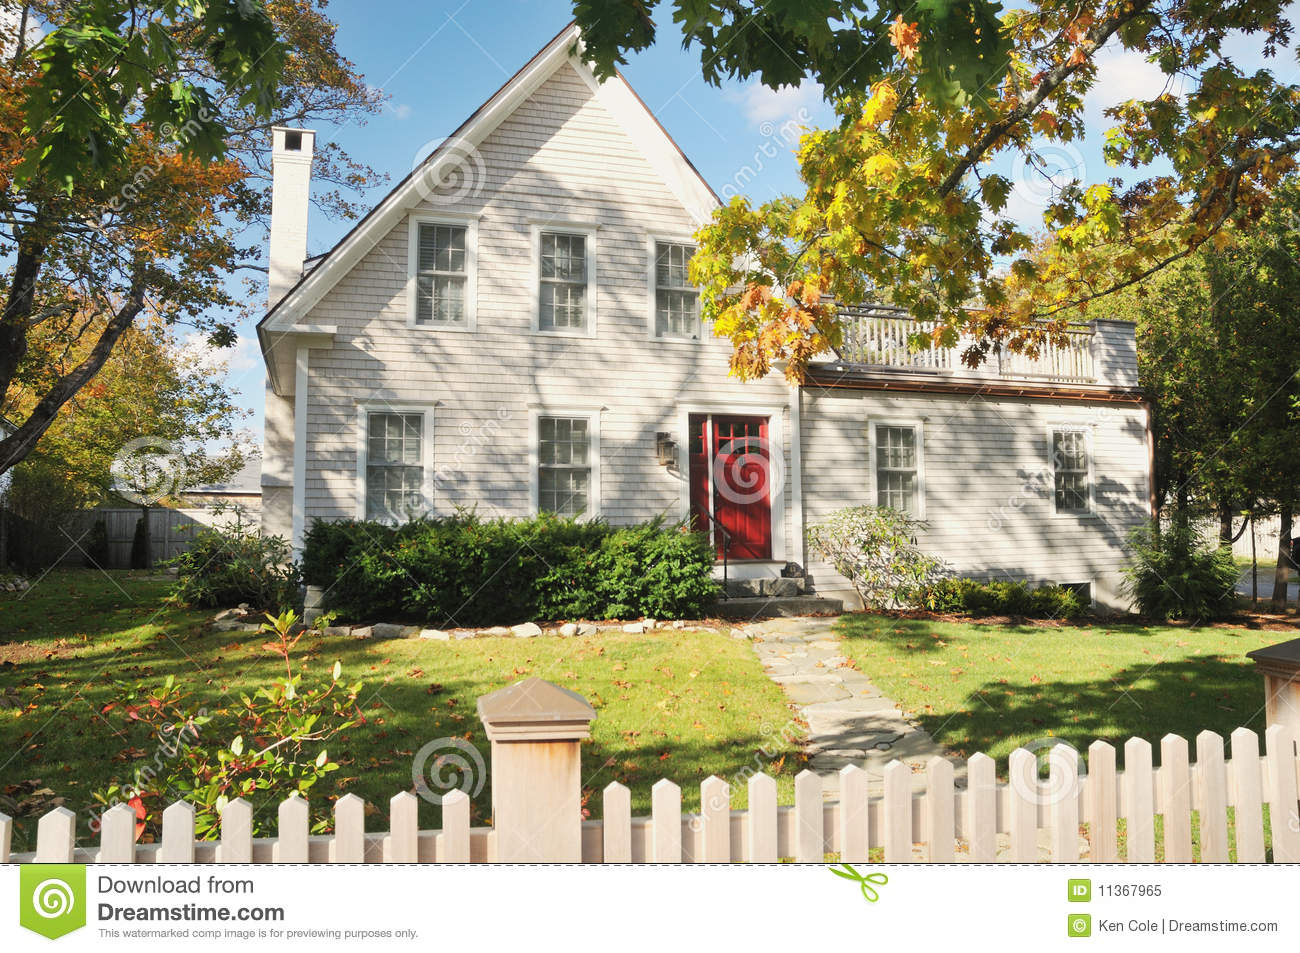 New england house in autumn stock image image 11367965 for Home in new england